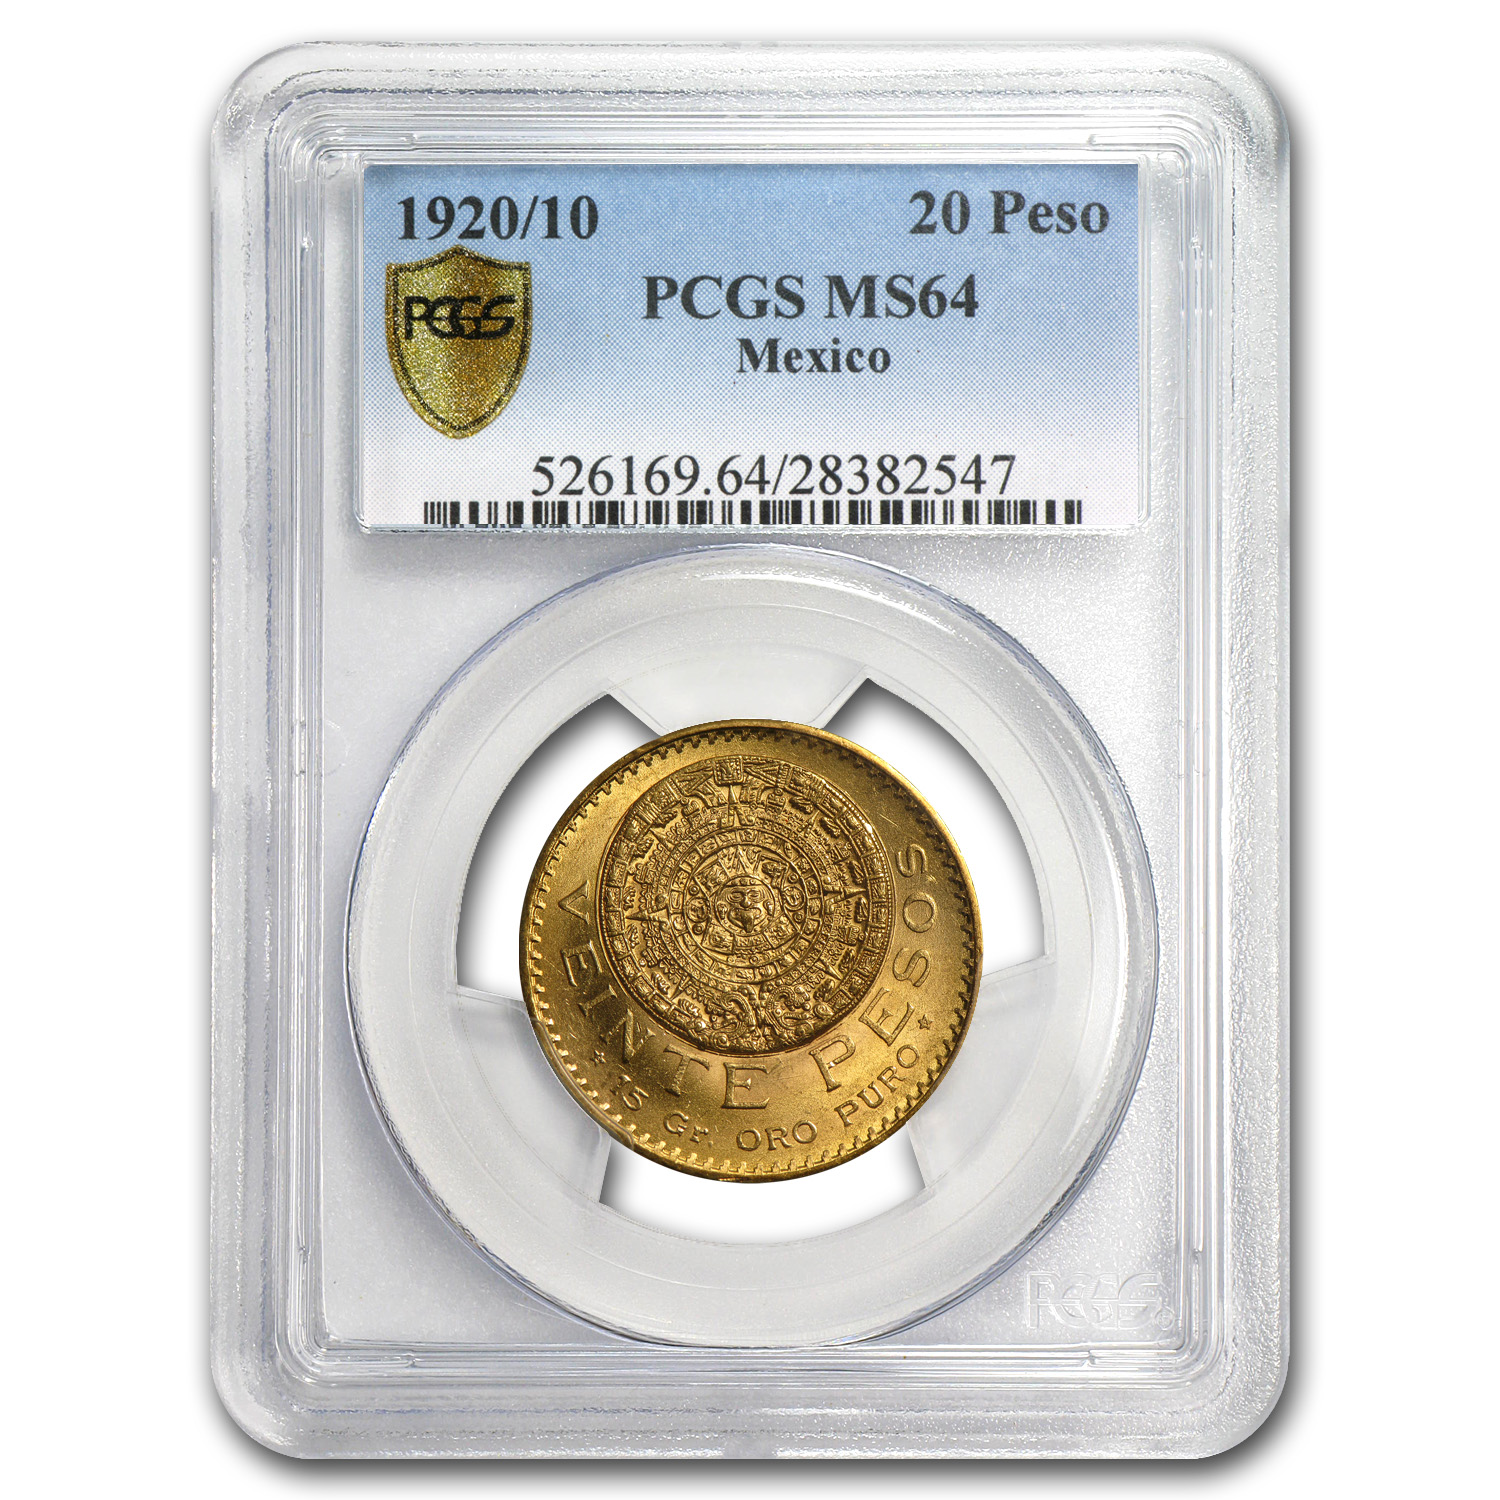 1920/10 Mexico Gold 20 Pesos MS-64 PCGS